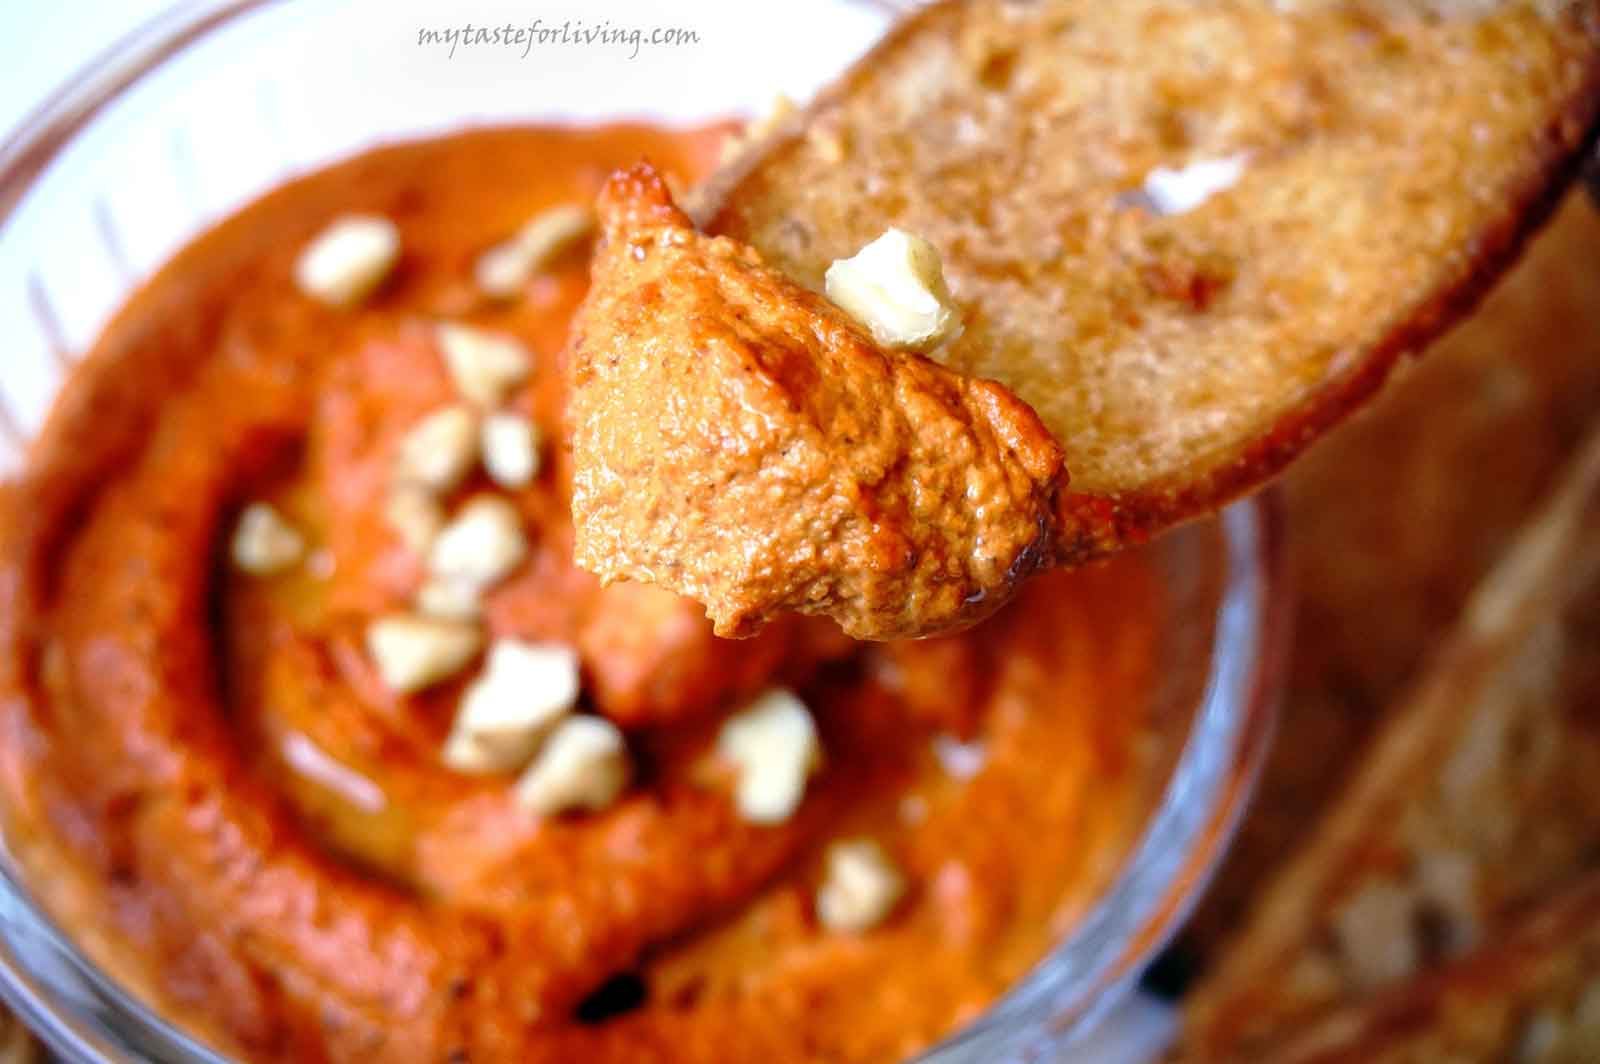 Extremely easy to make and delicious vegan dip of roasted red peppers and walnuts.